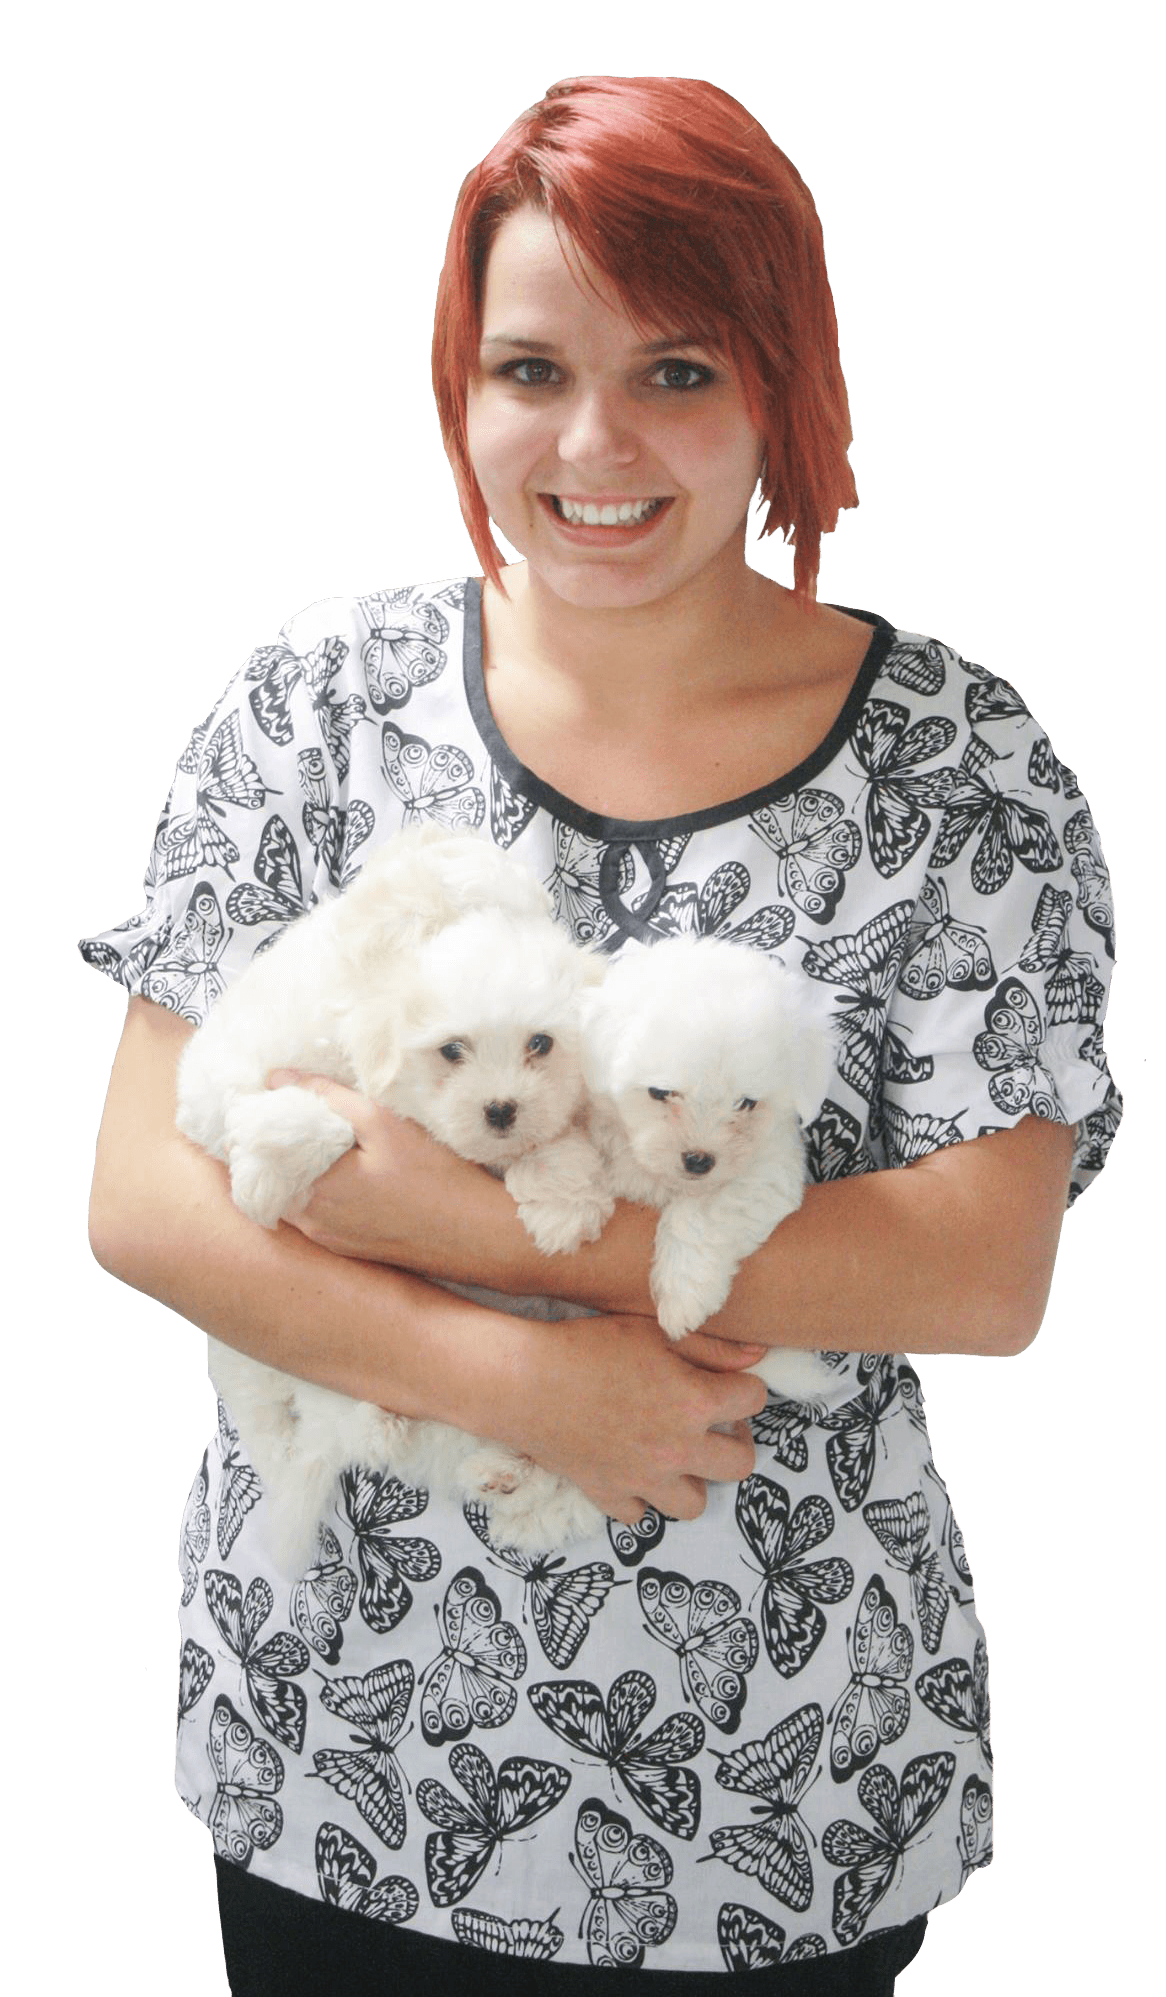 Girl holding puppies